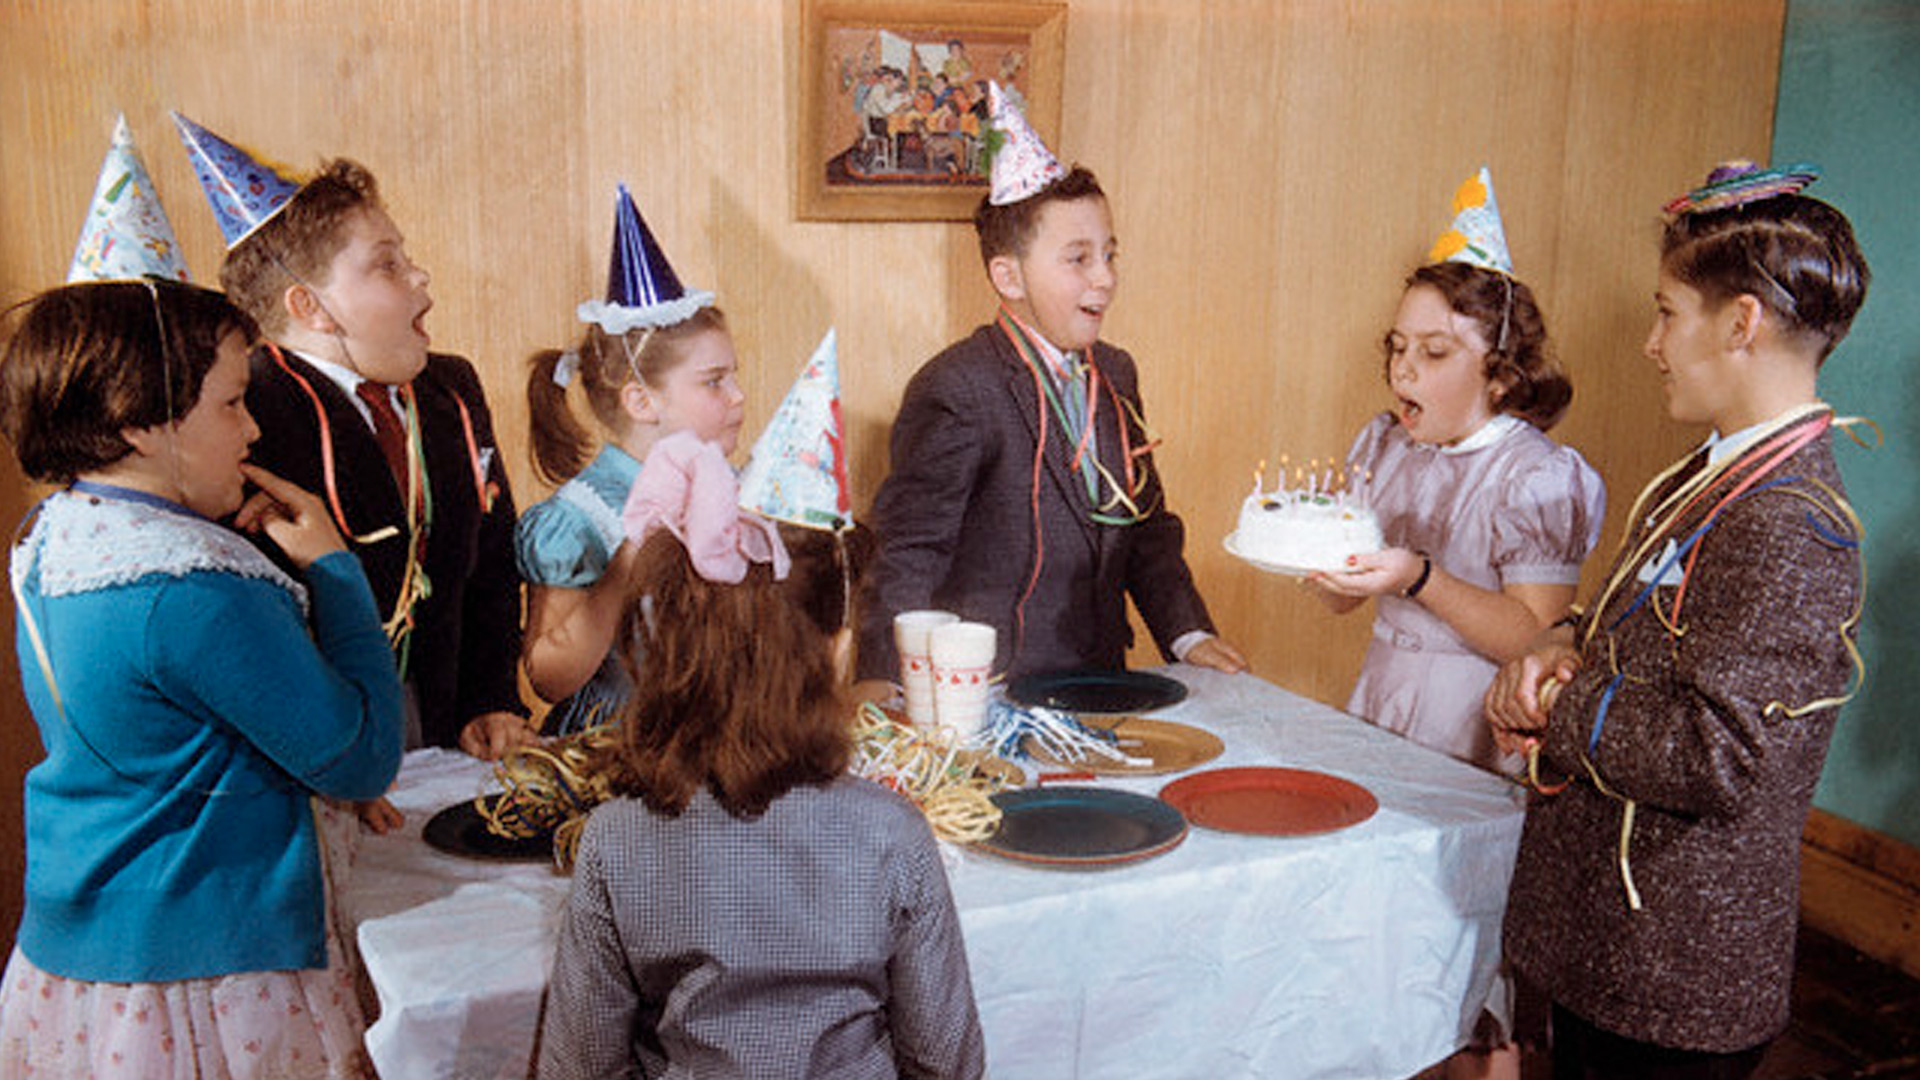 birthday parties an introvert s worst nightmare vintage photo of kids at a birthday party